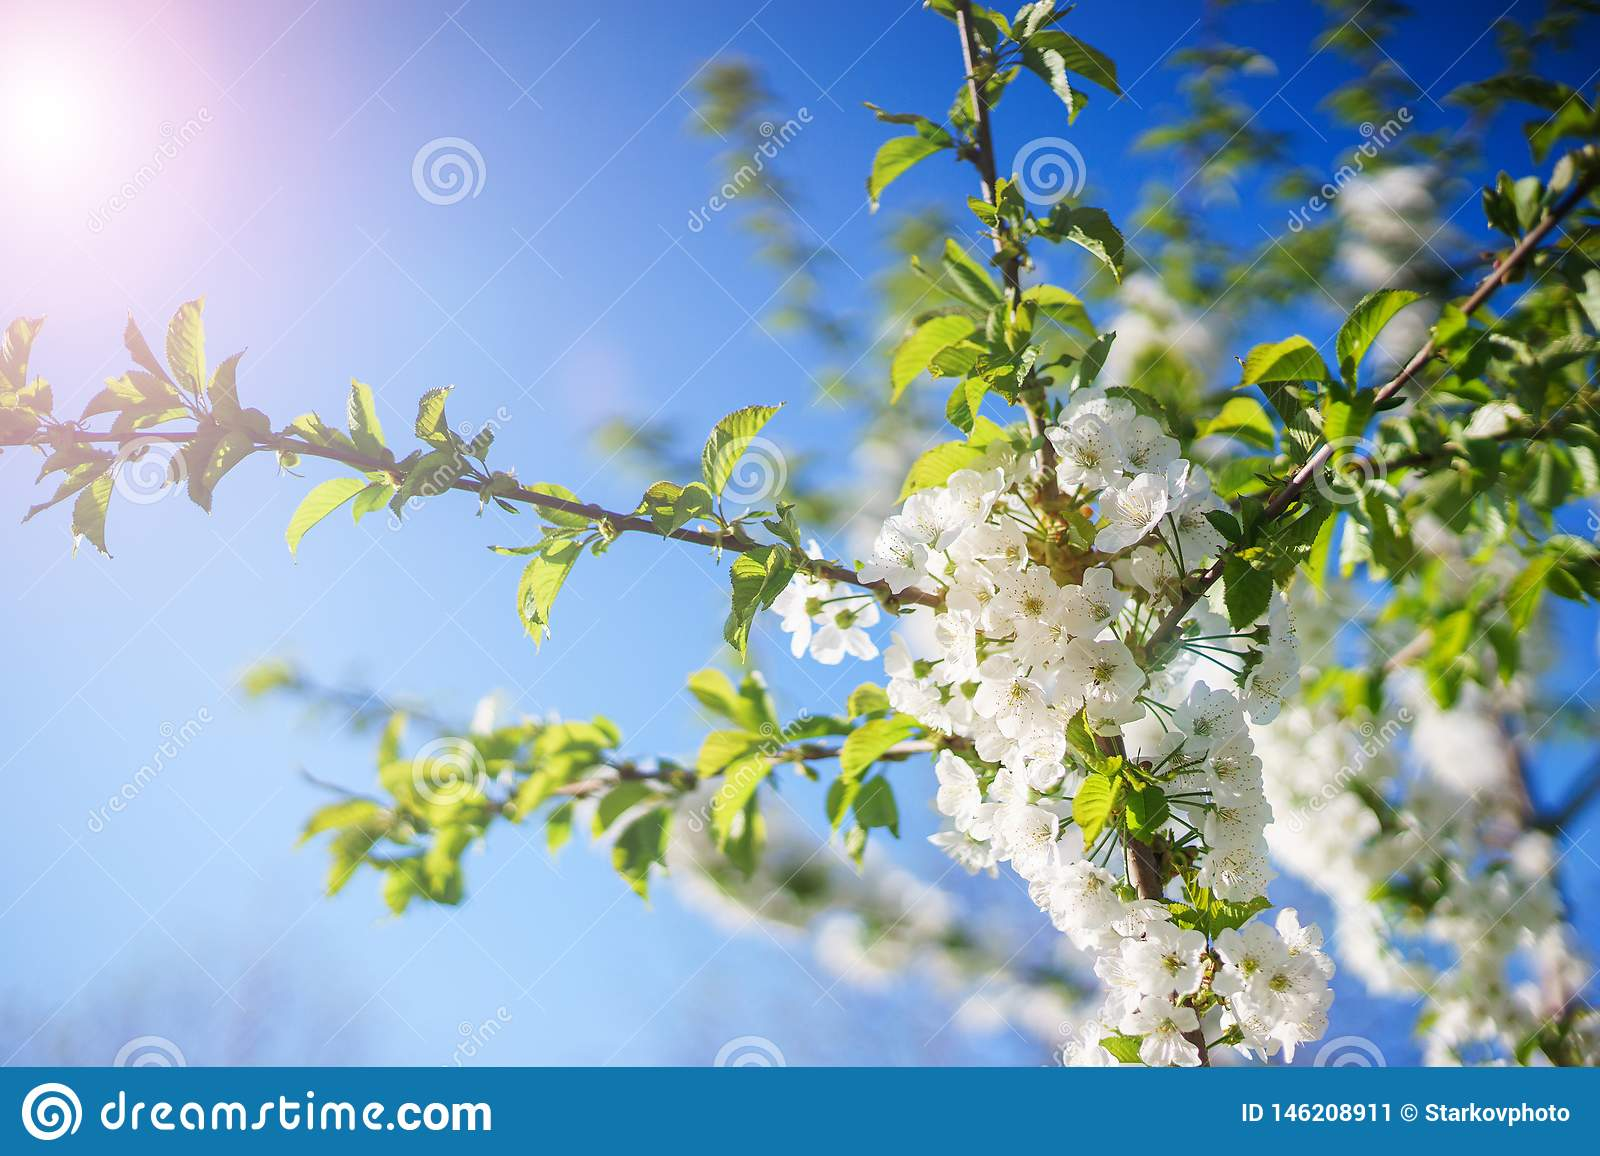 Flowers Cherry Blossoms On The Branches On A Spring Day Stock Image Image Of Freshness Blank 146208911